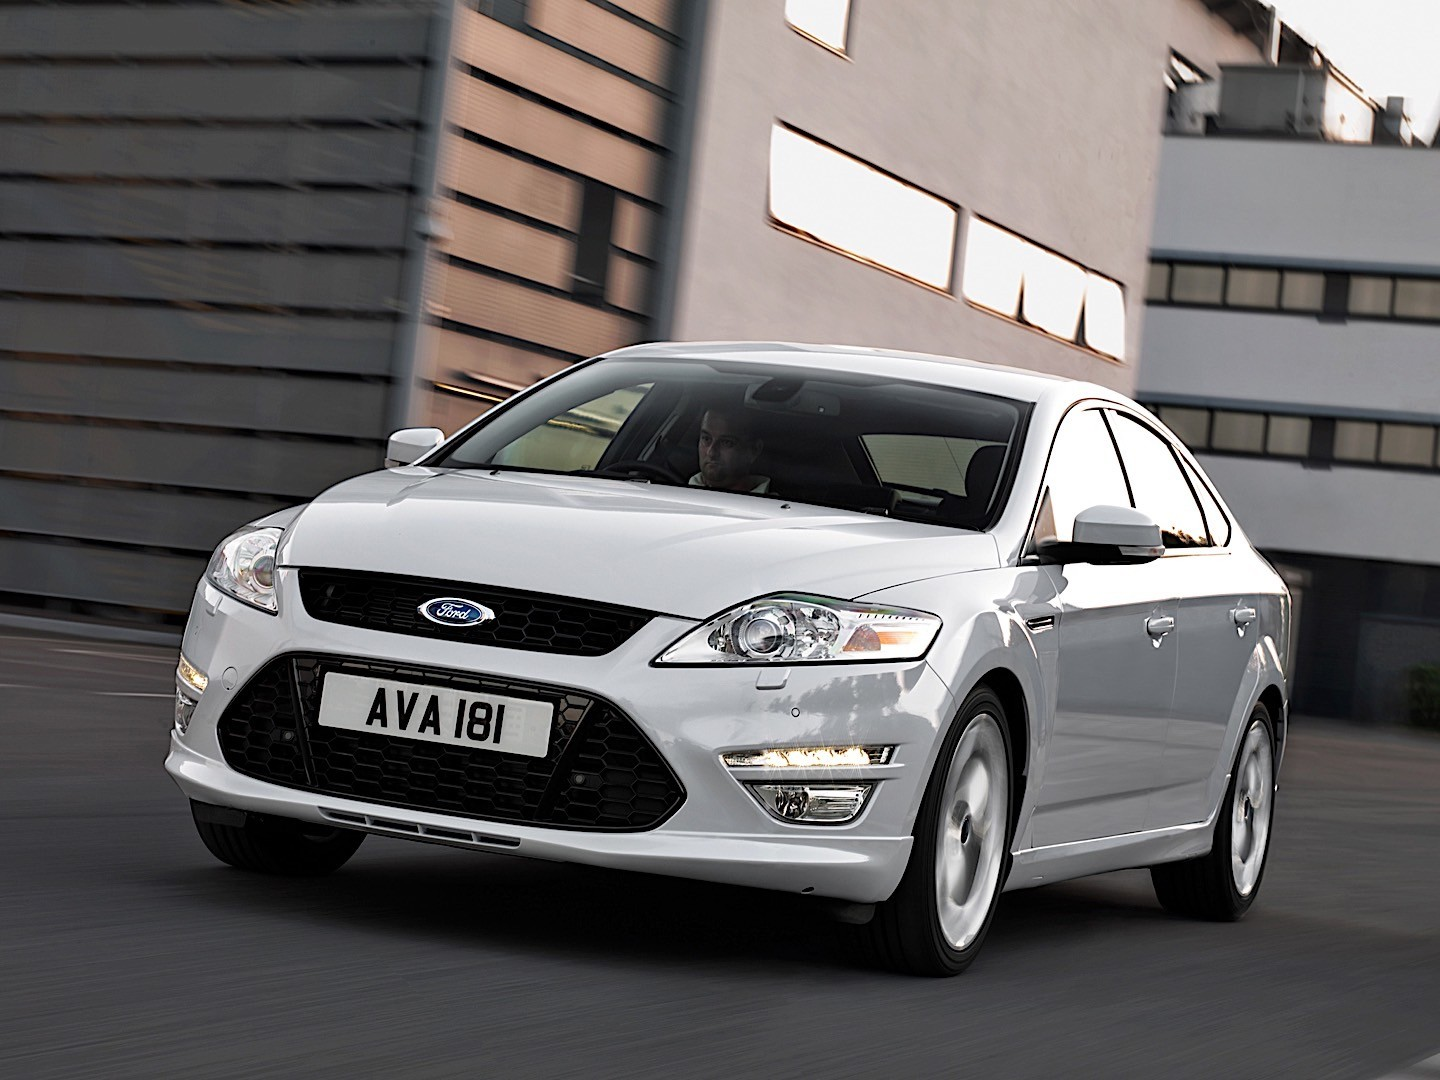 ford mondeo hatchback specs 2010 2011 2012 2013 2014 autoevolution. Black Bedroom Furniture Sets. Home Design Ideas